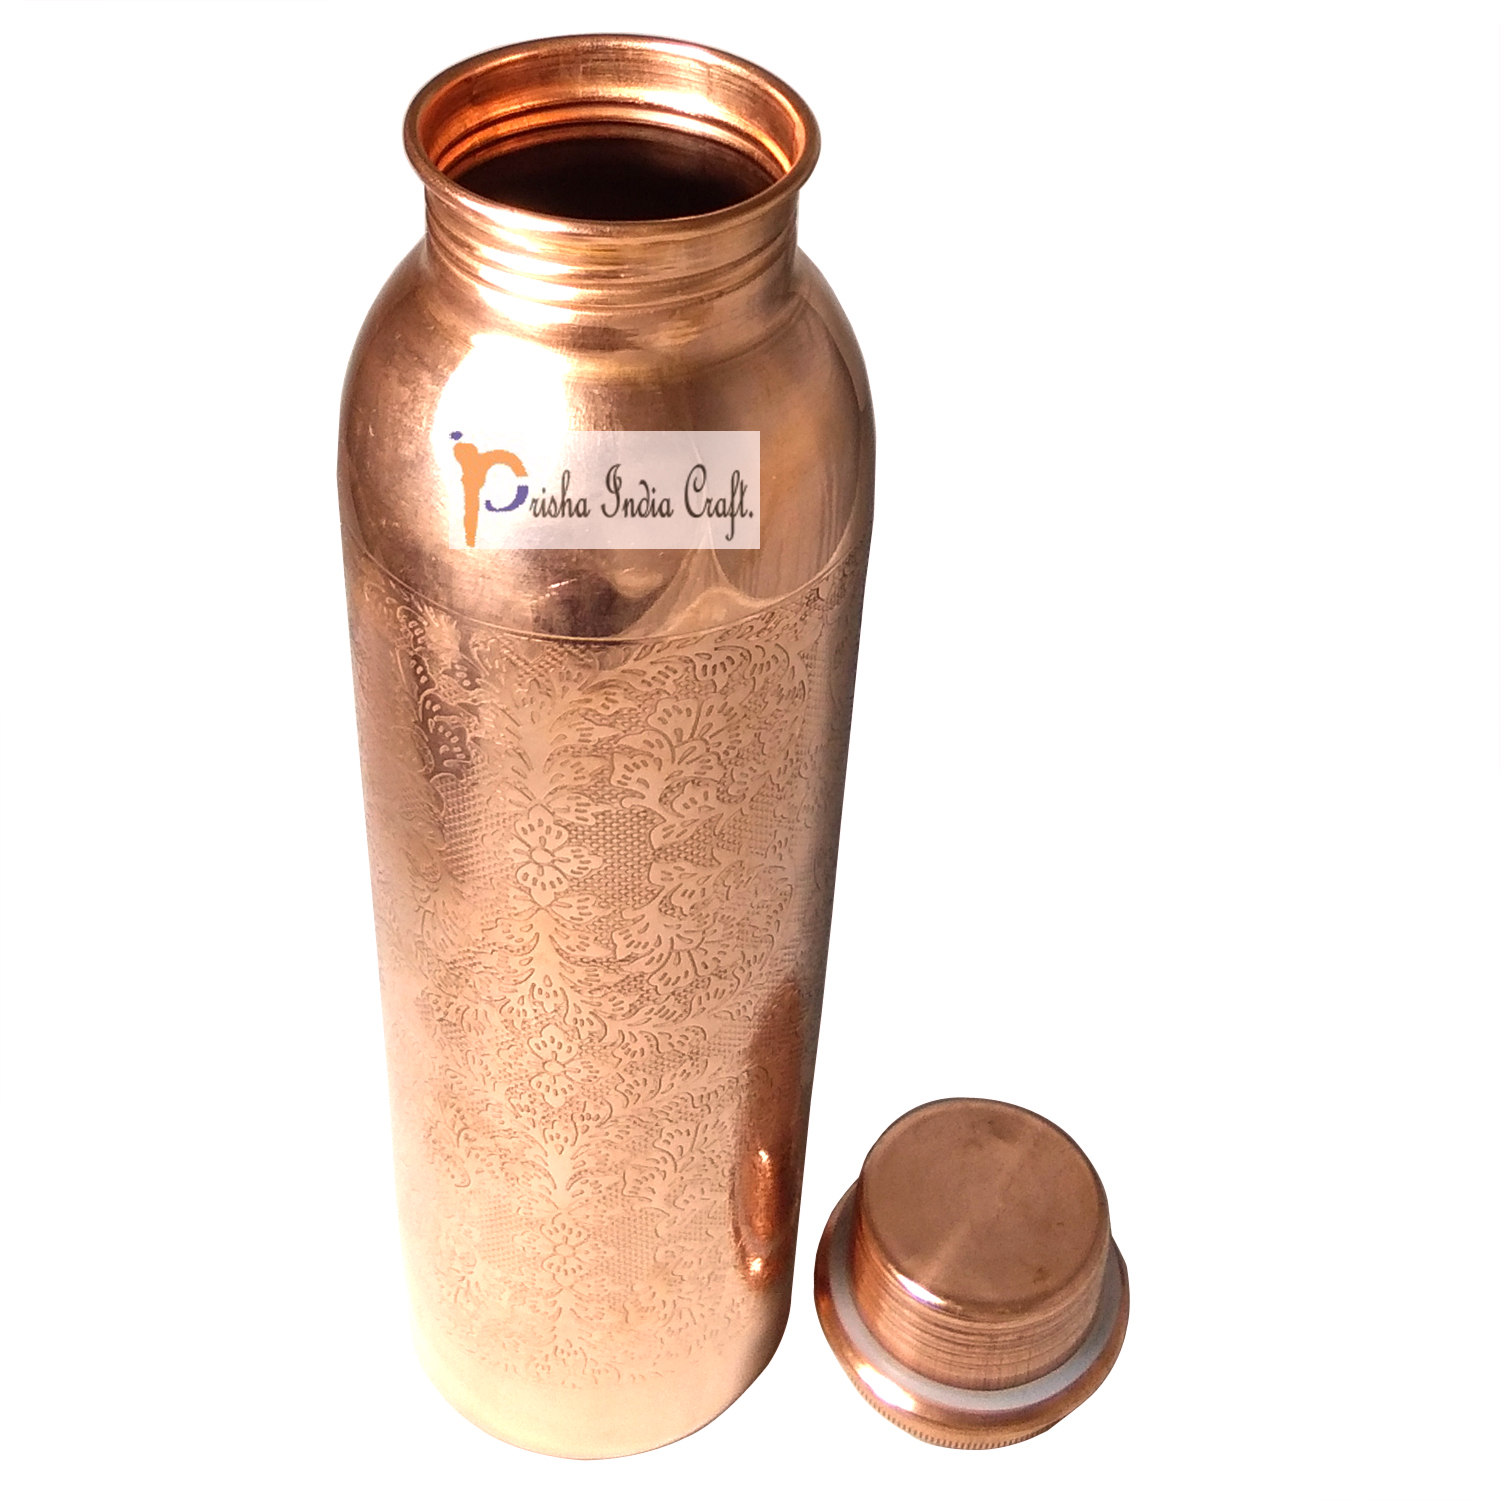 Copper Bottle with New Designed, Travel Essential, Drinkware, Pure Copper Water Bottle 900 ML | Set of 2, 2 image